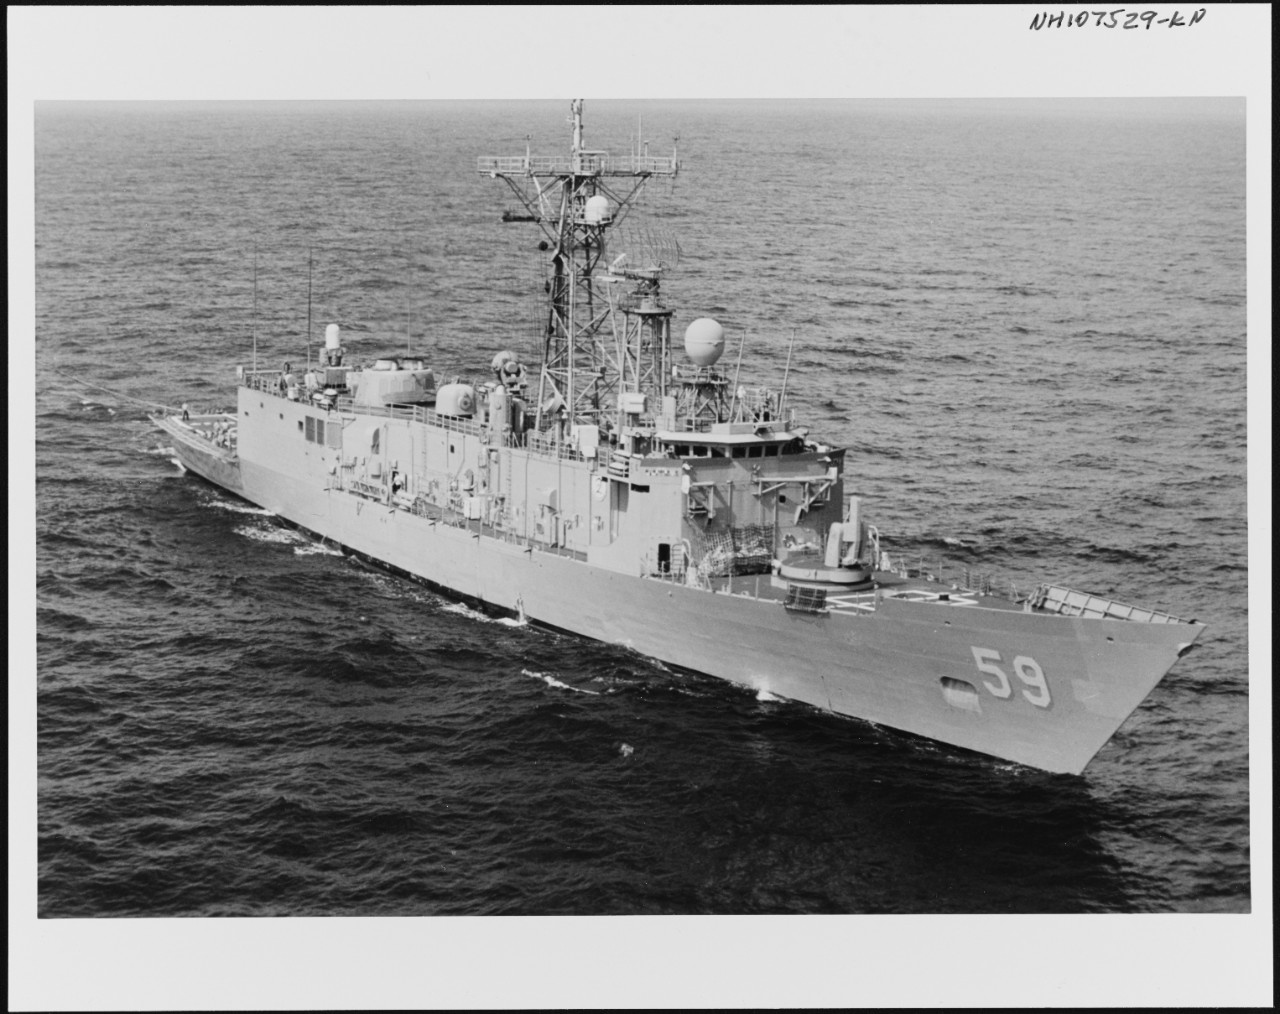 Photo #: NH 107529-KN USS Kauffman